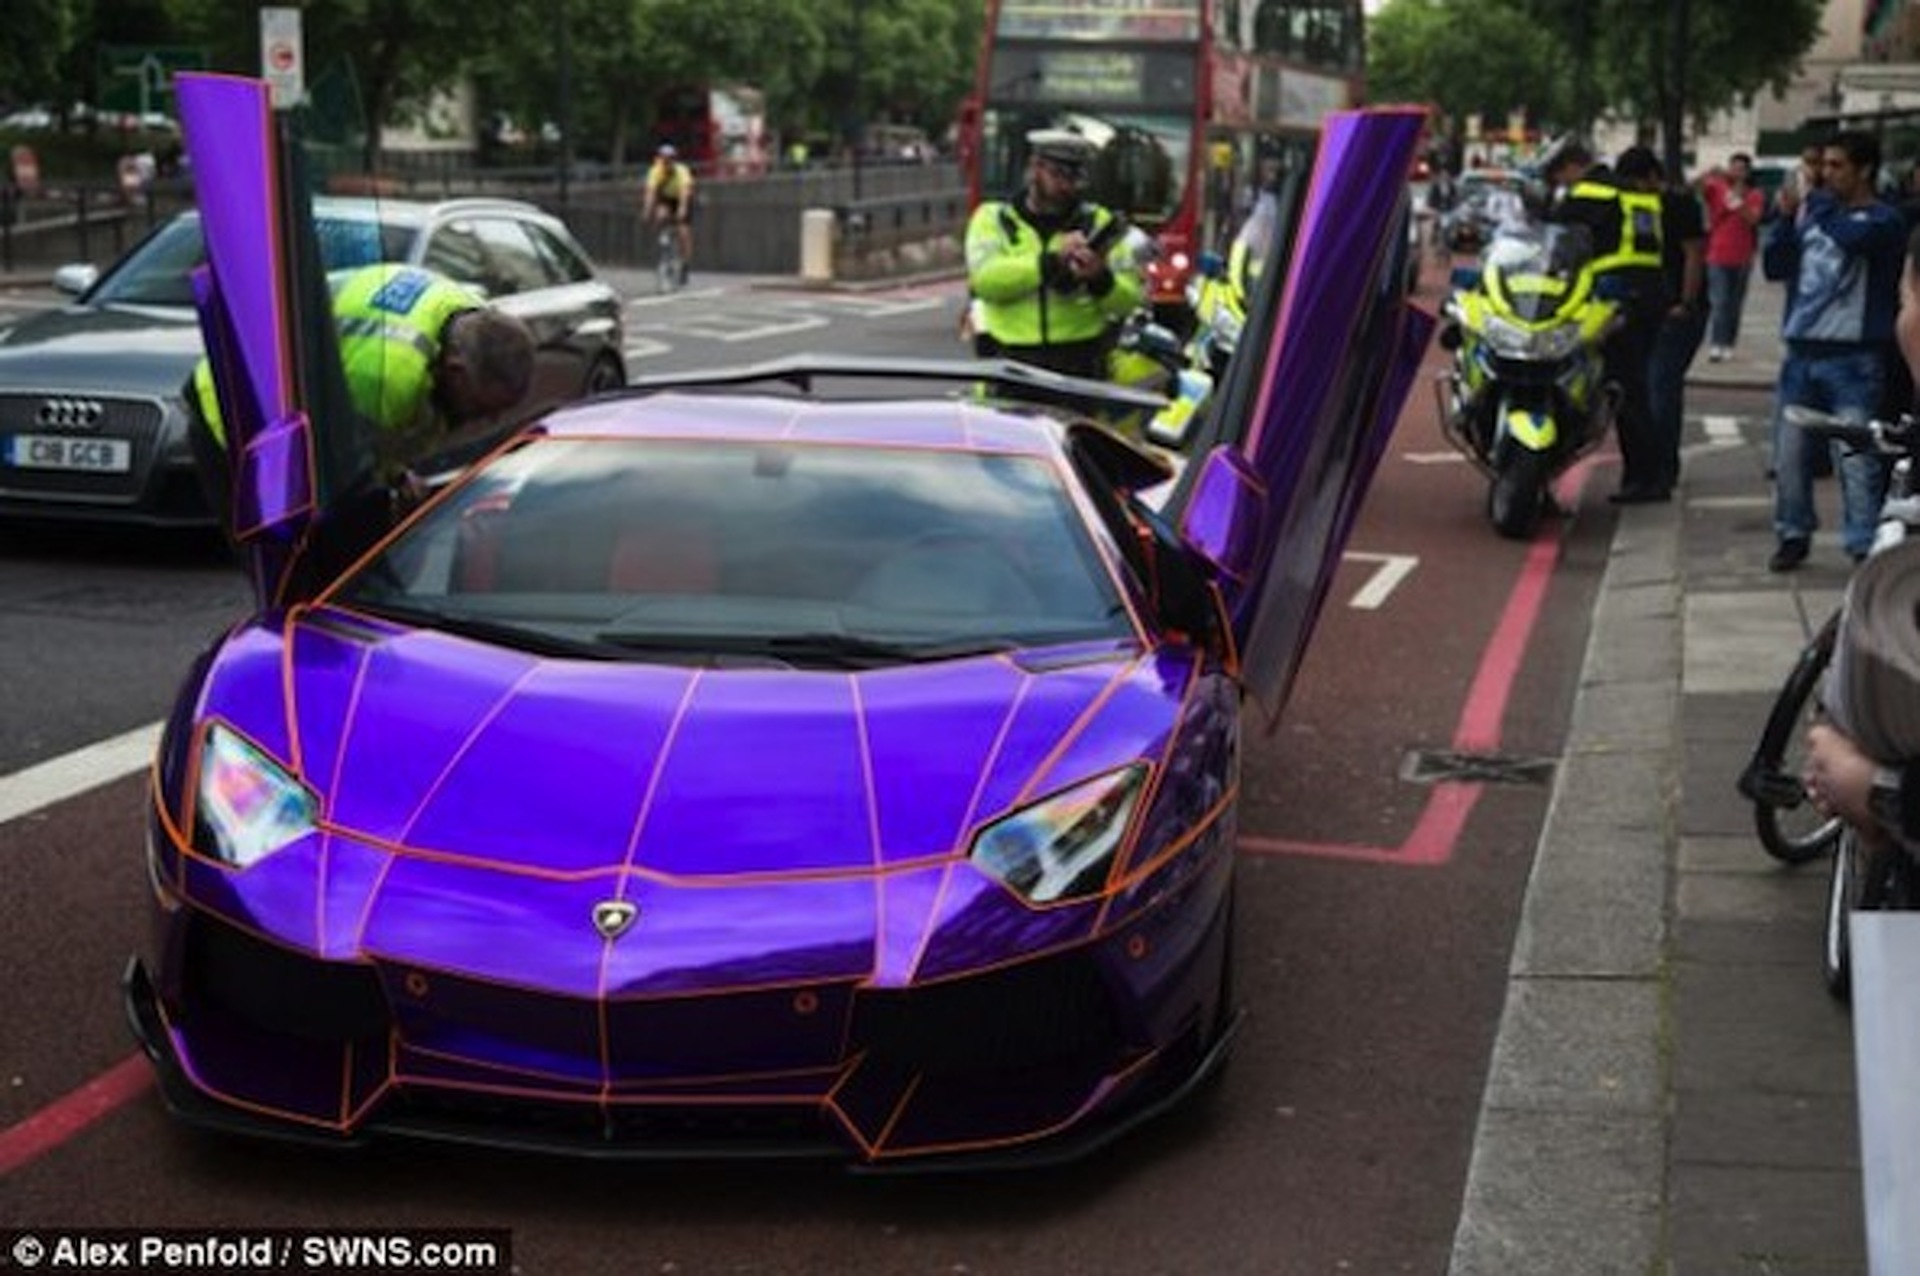 Glow In The Dark Lamborghini Seized By London Police Update W Video